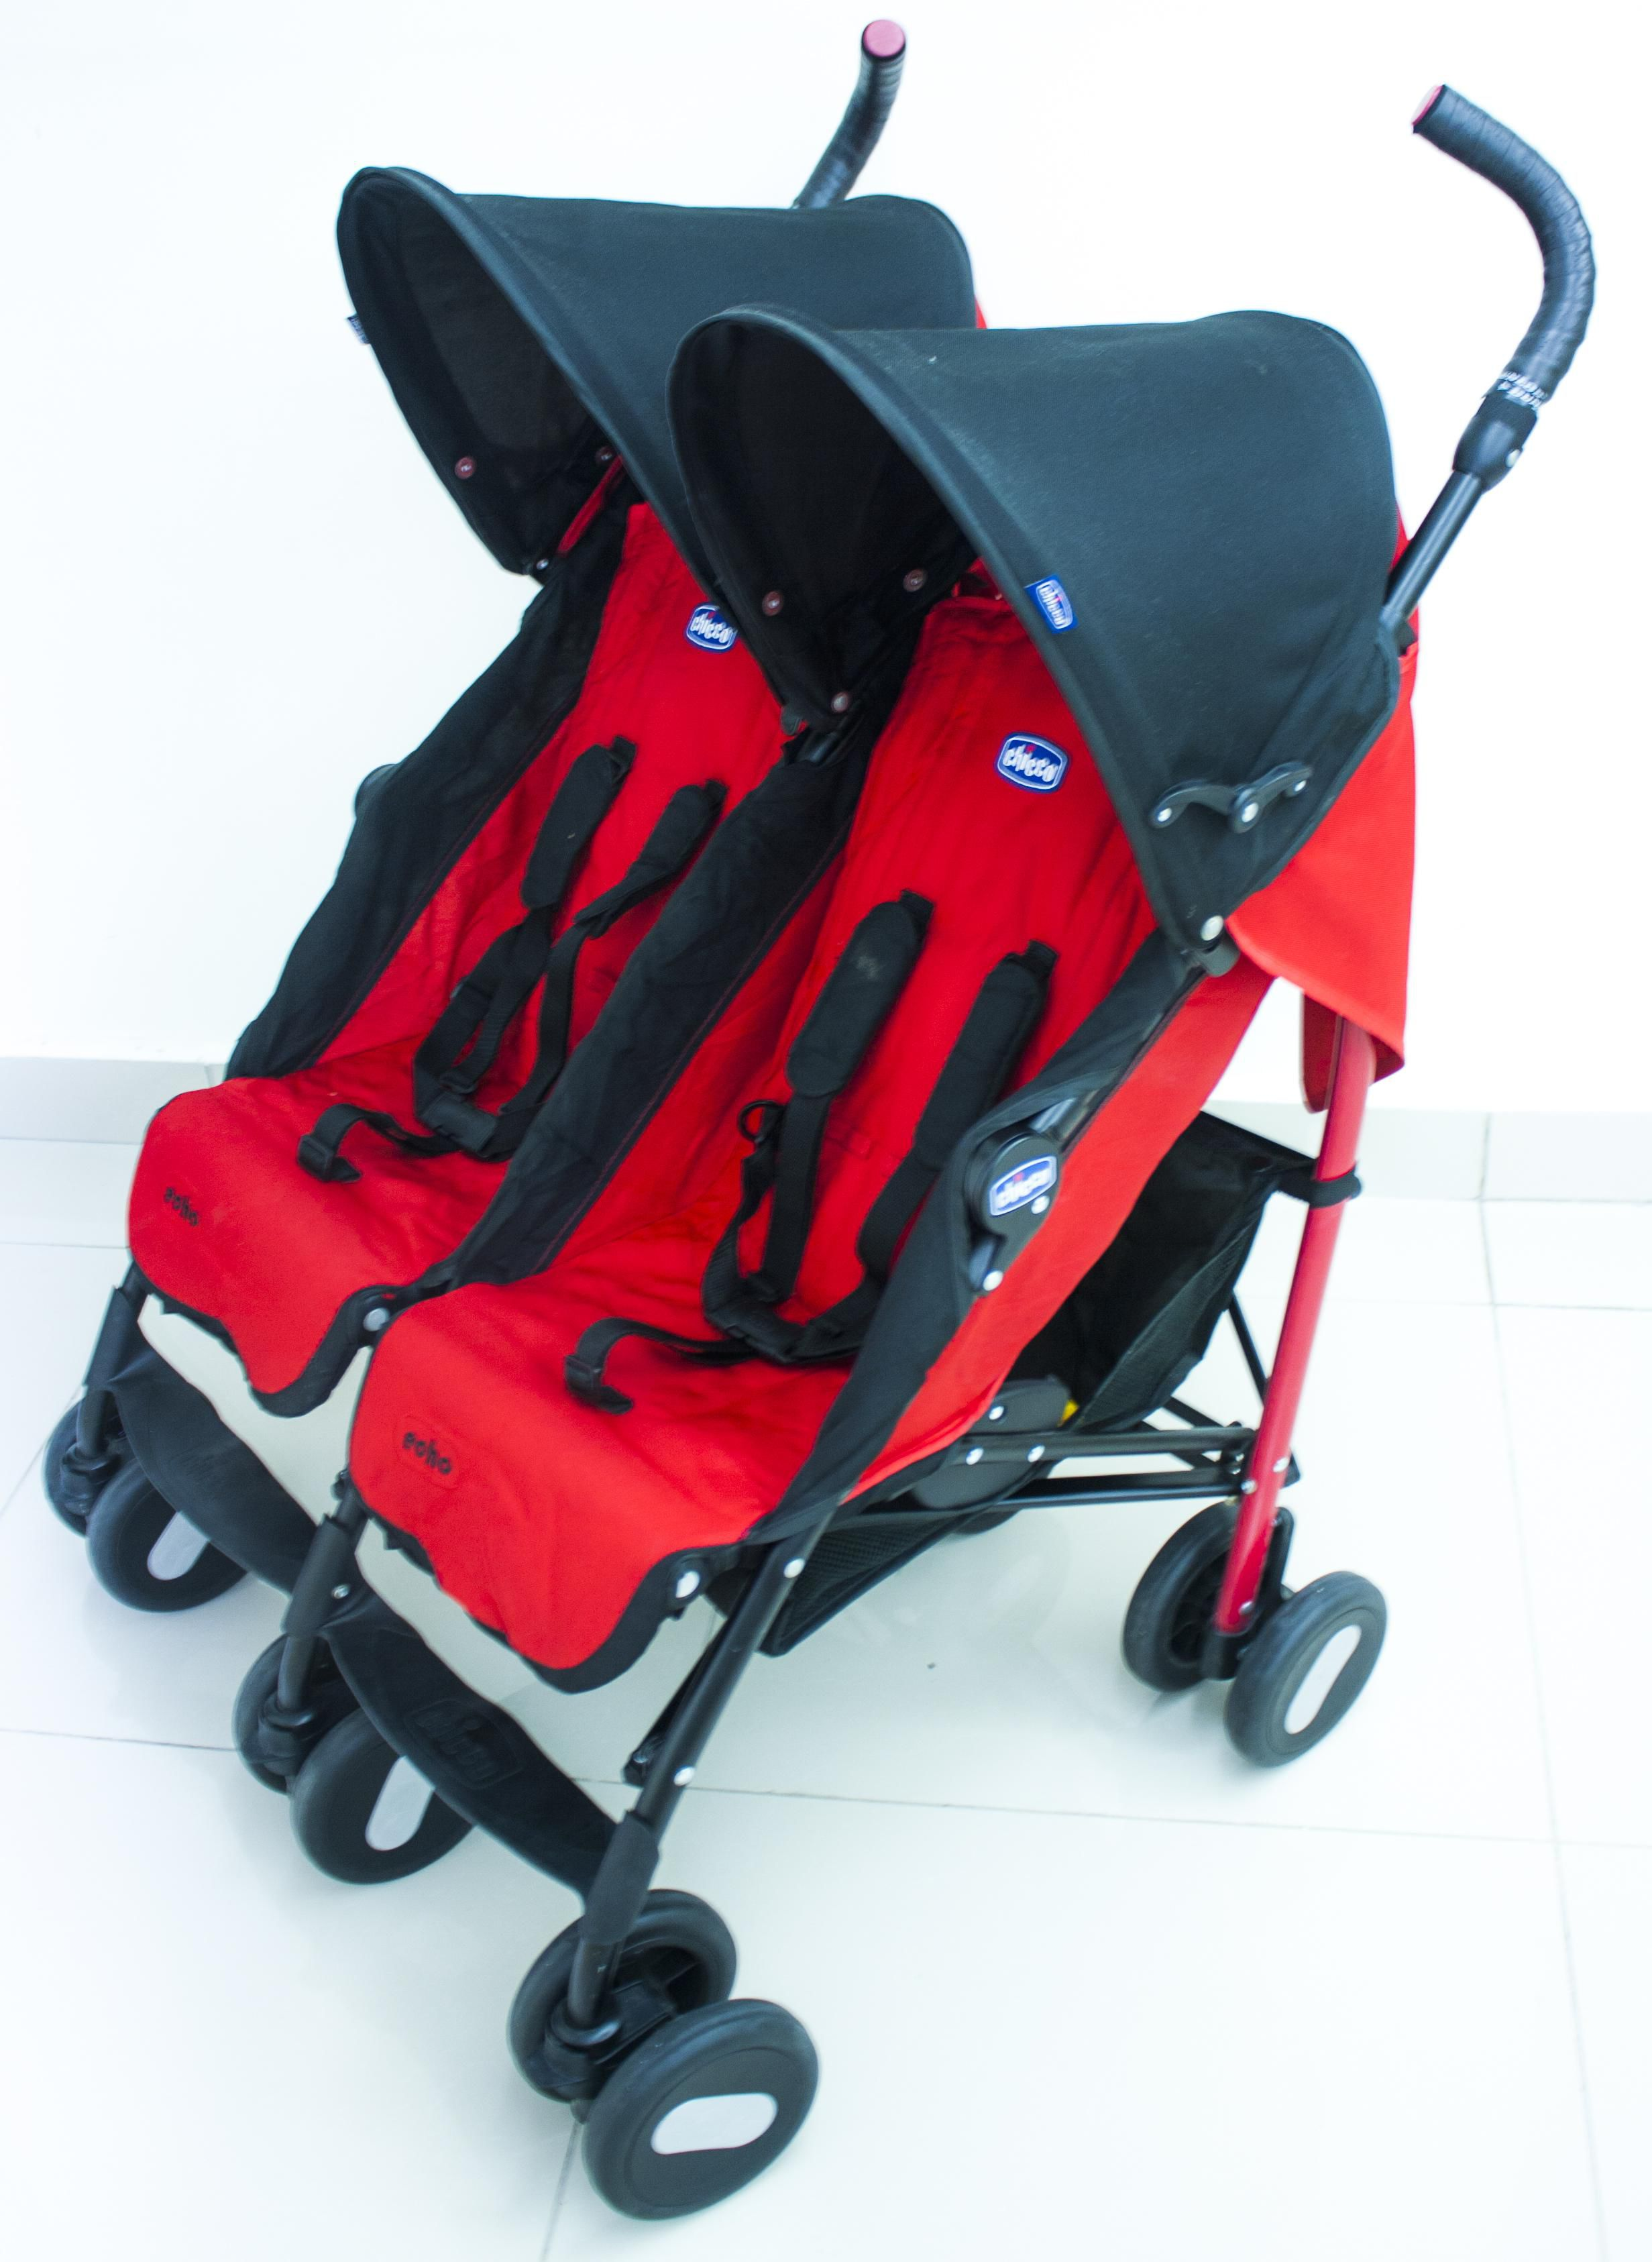 Upscale Car Seats Travel Systems Co Echo Twin Stroller Garnet Products Monmartt Co Stroller Canopy Co Stroller Umbrella baby Chicco Double Stroller